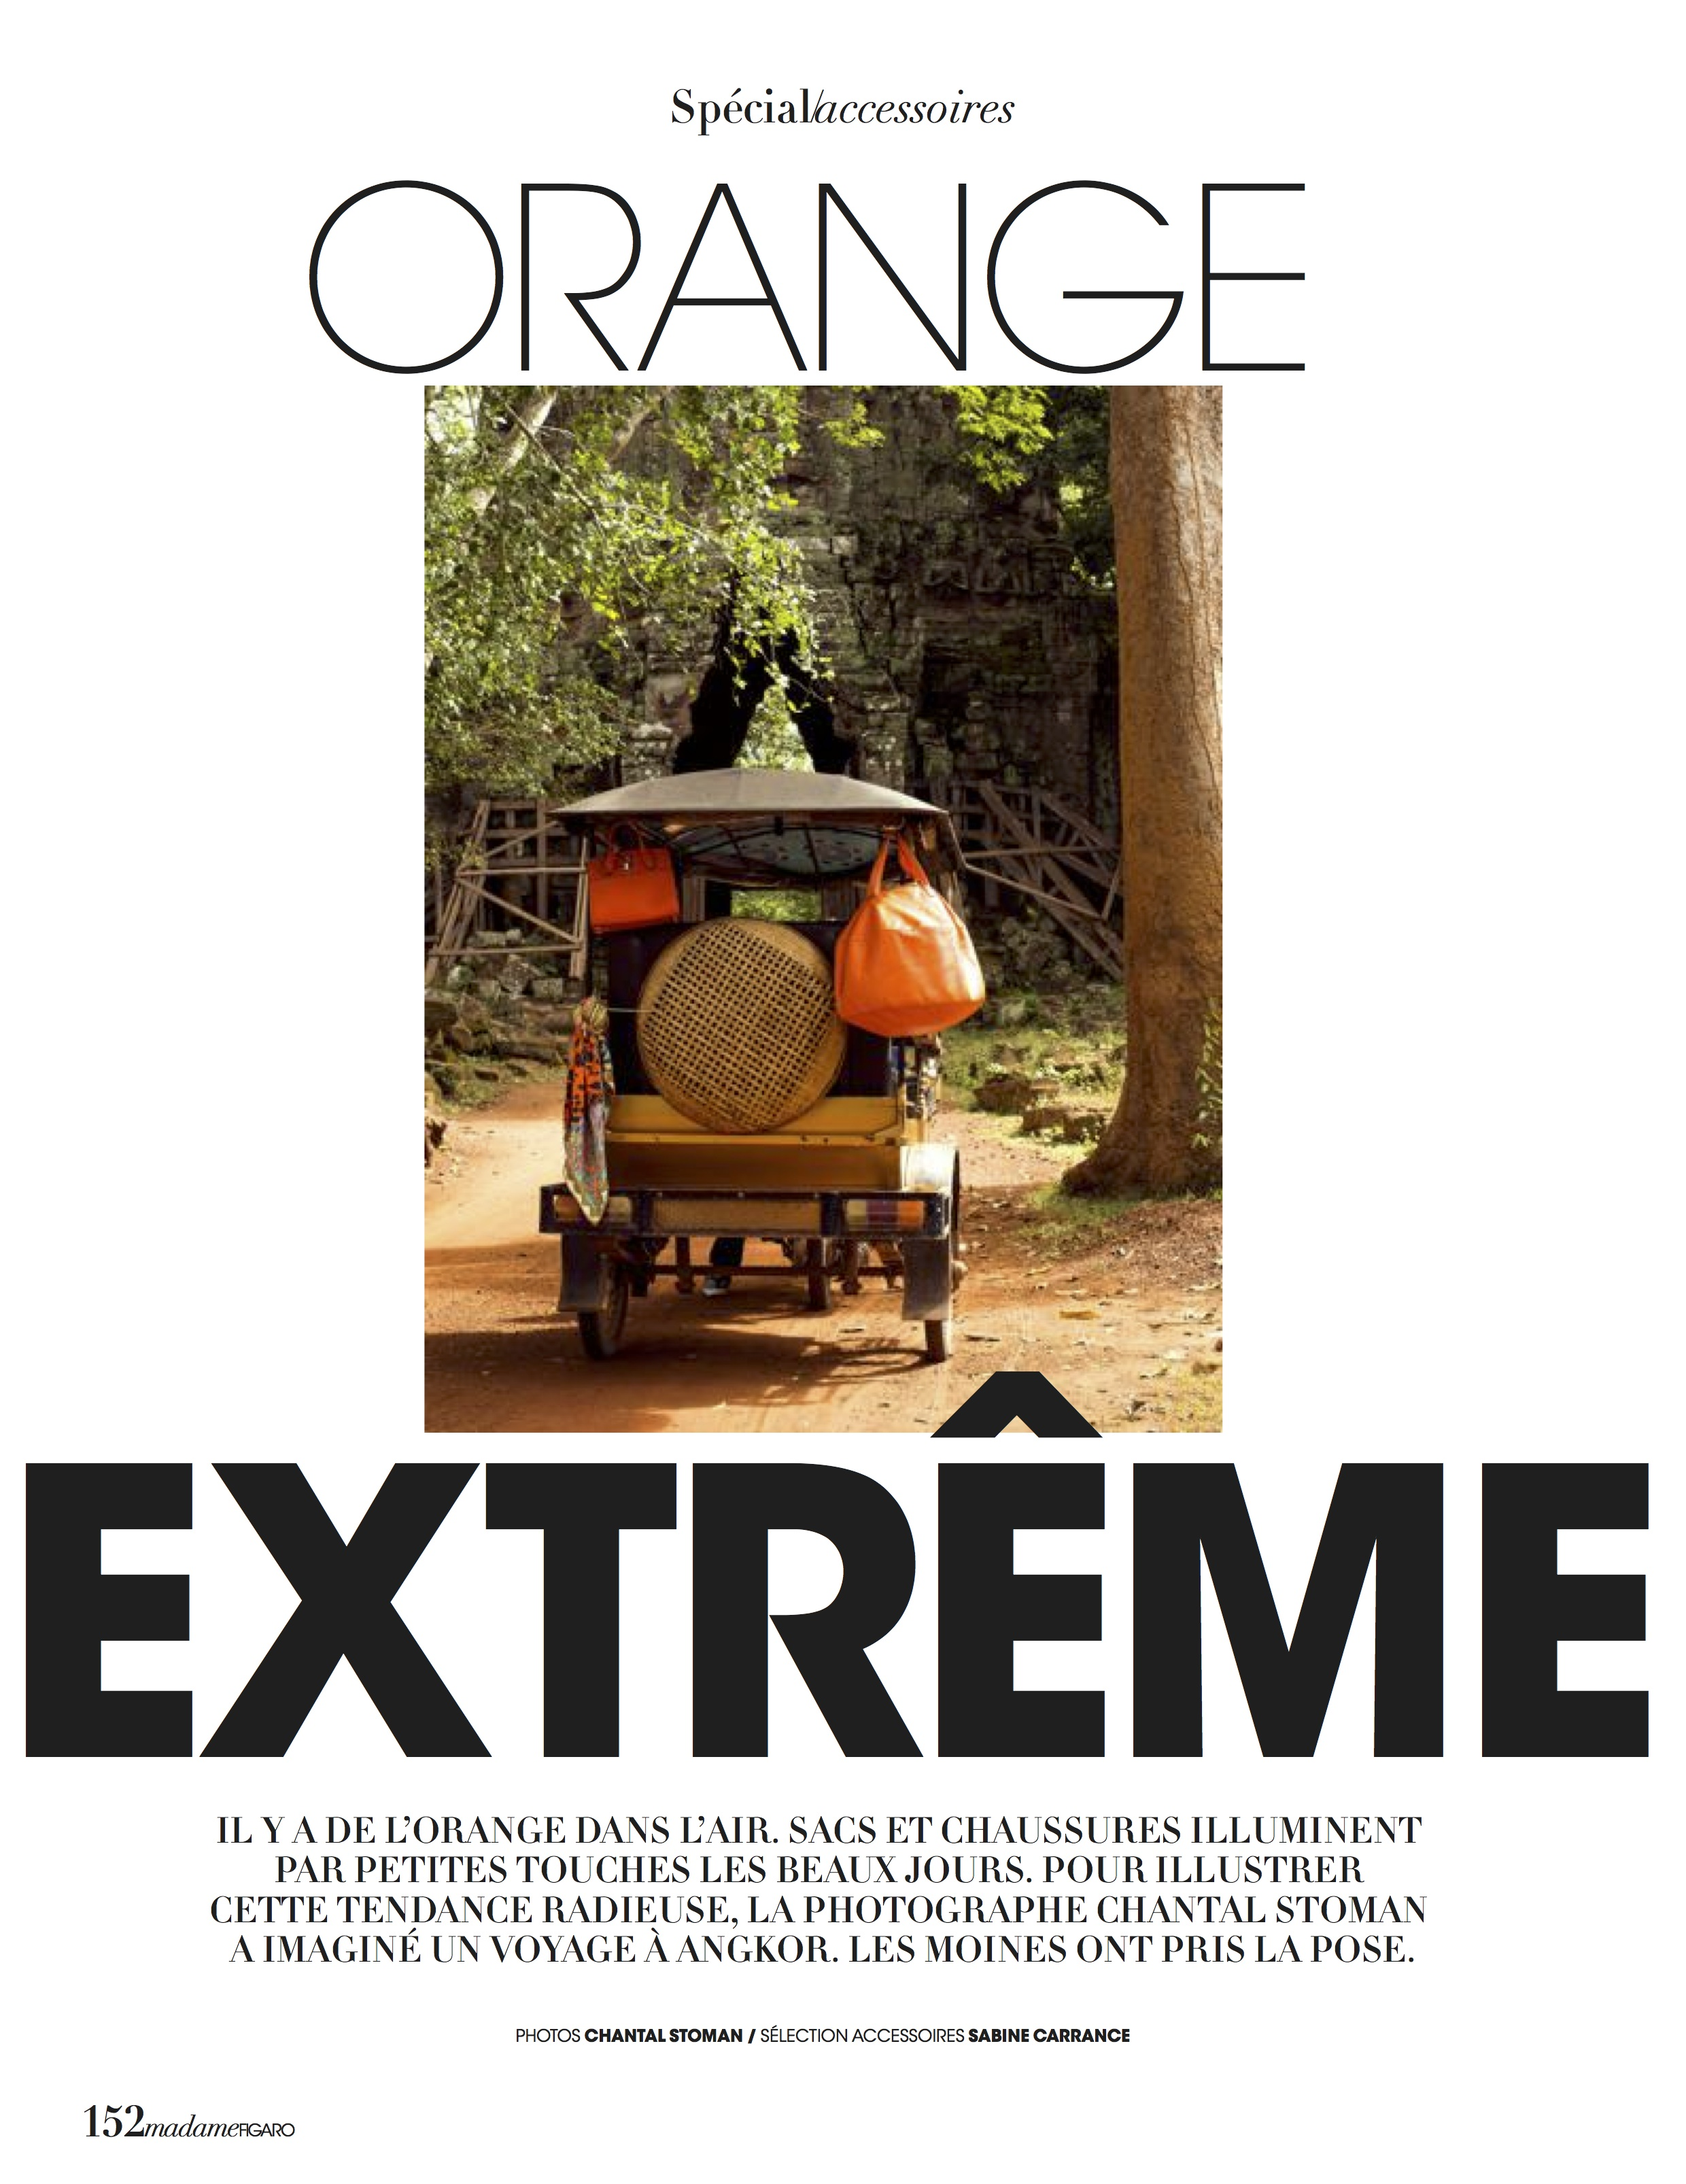 ORANGE EXTRÊME by Stoman